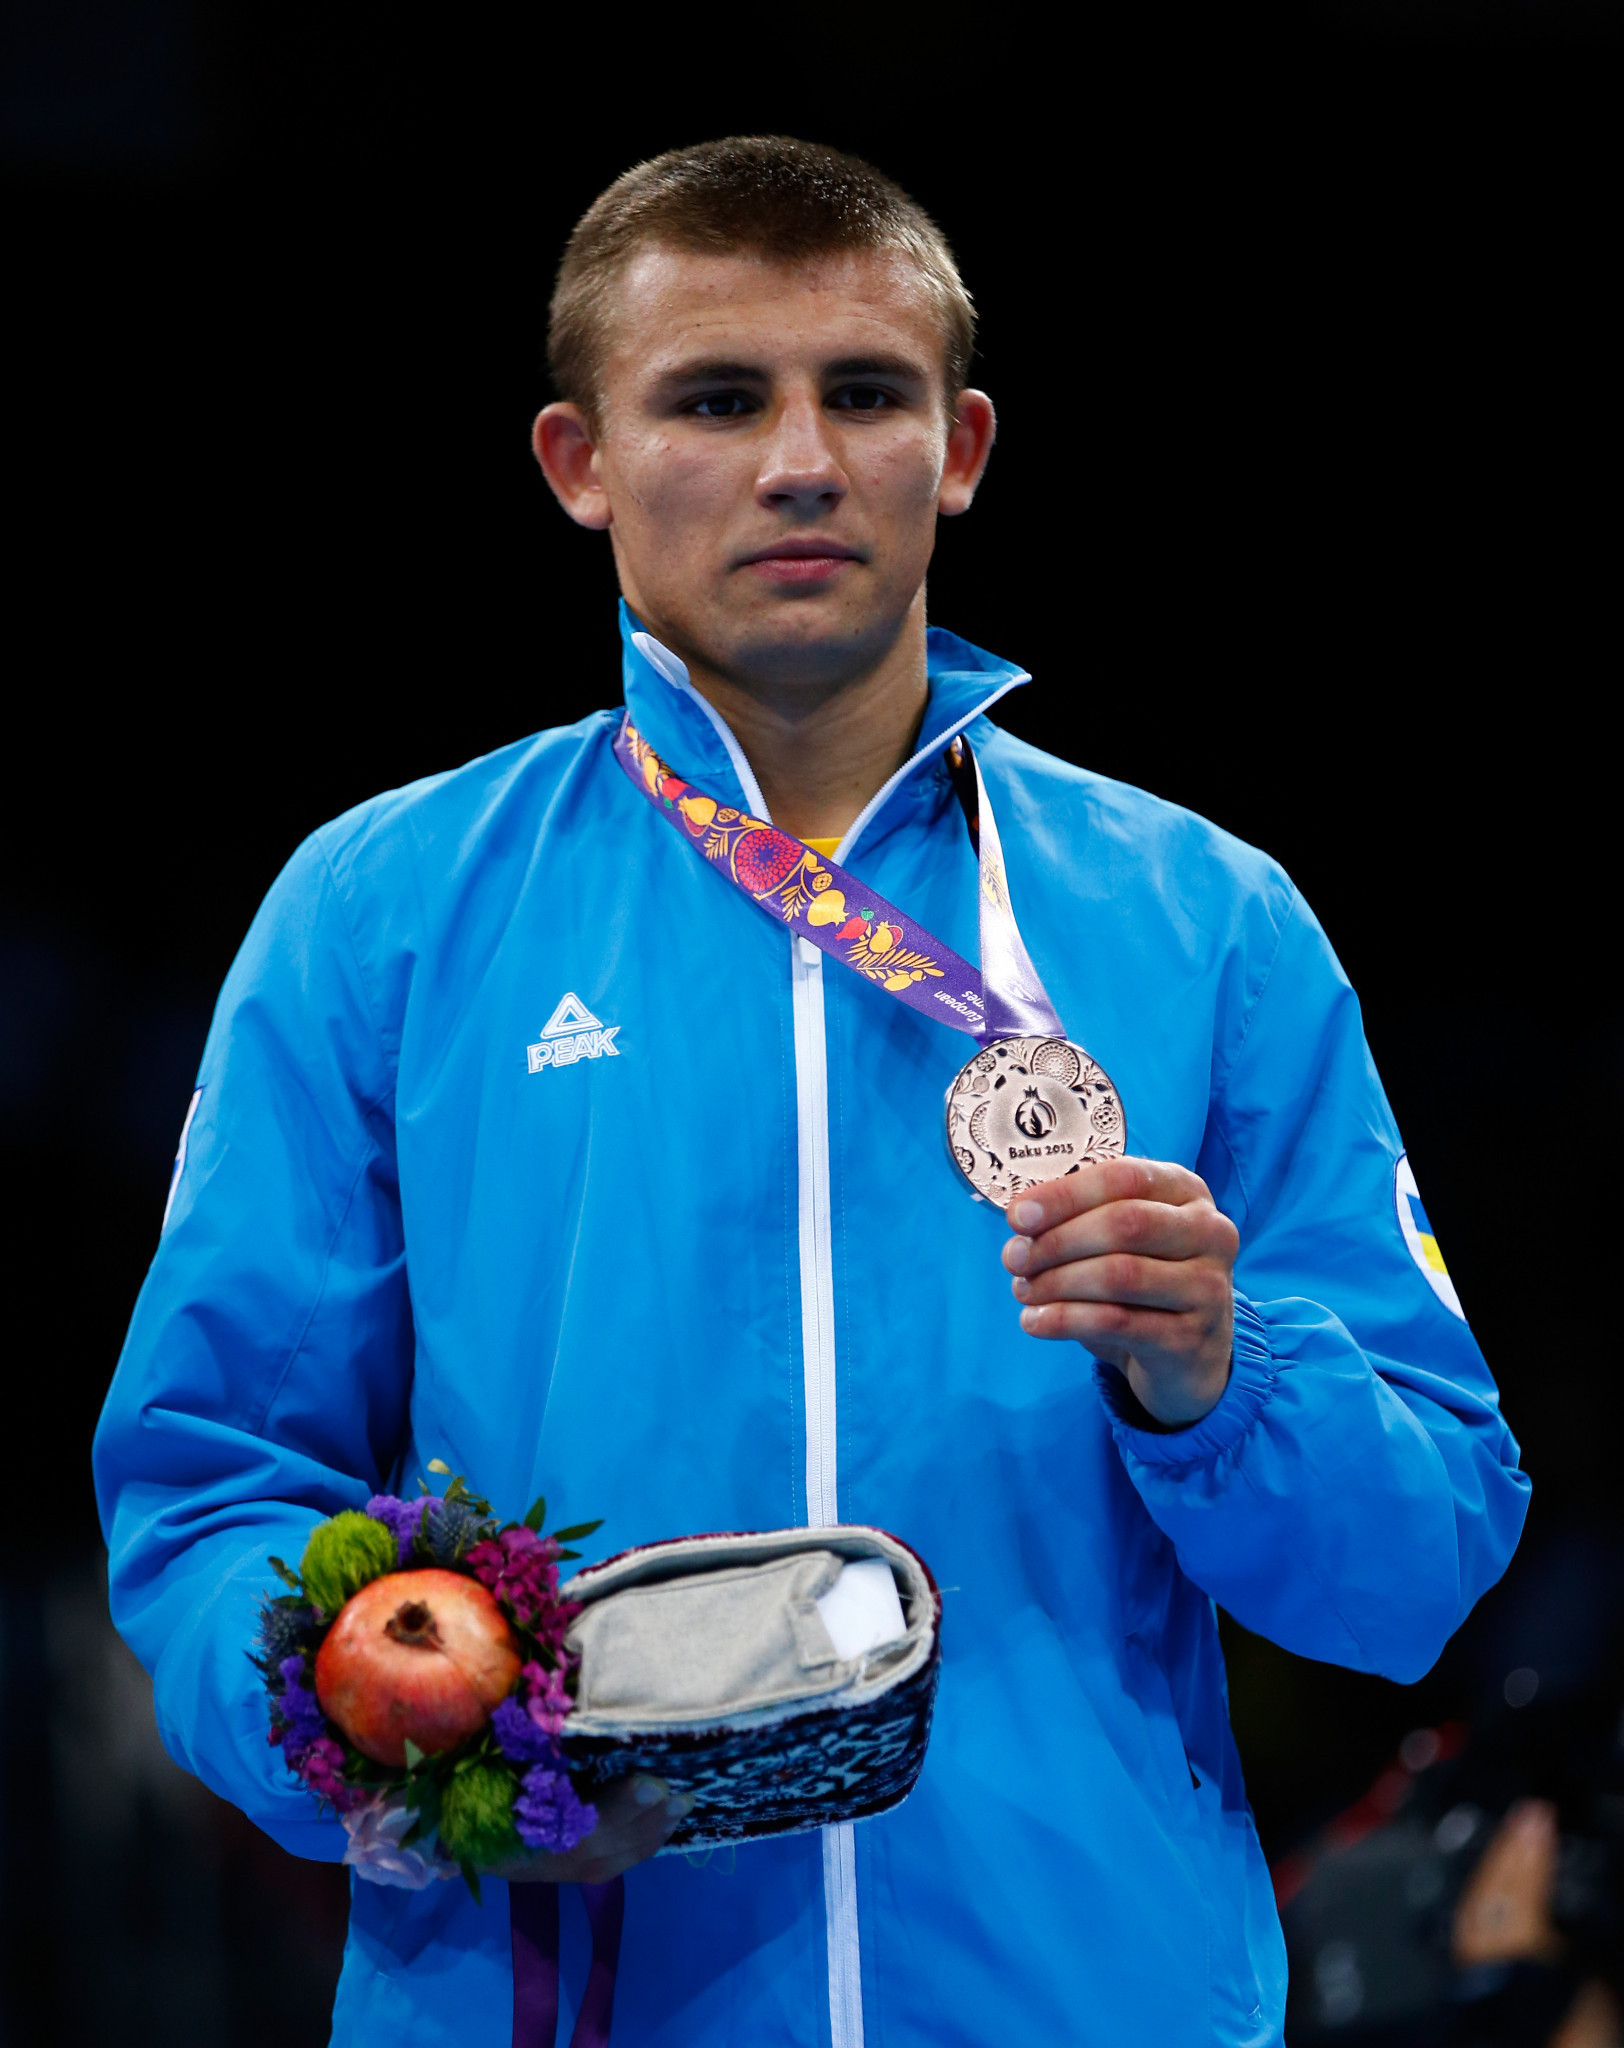 Ukraine's Oleksandr Khyzhniak, the 2017 world middleweight champion, is one of two European Boxing Confederation representatives on the AIBA Athletes' Commission ©Getty Images